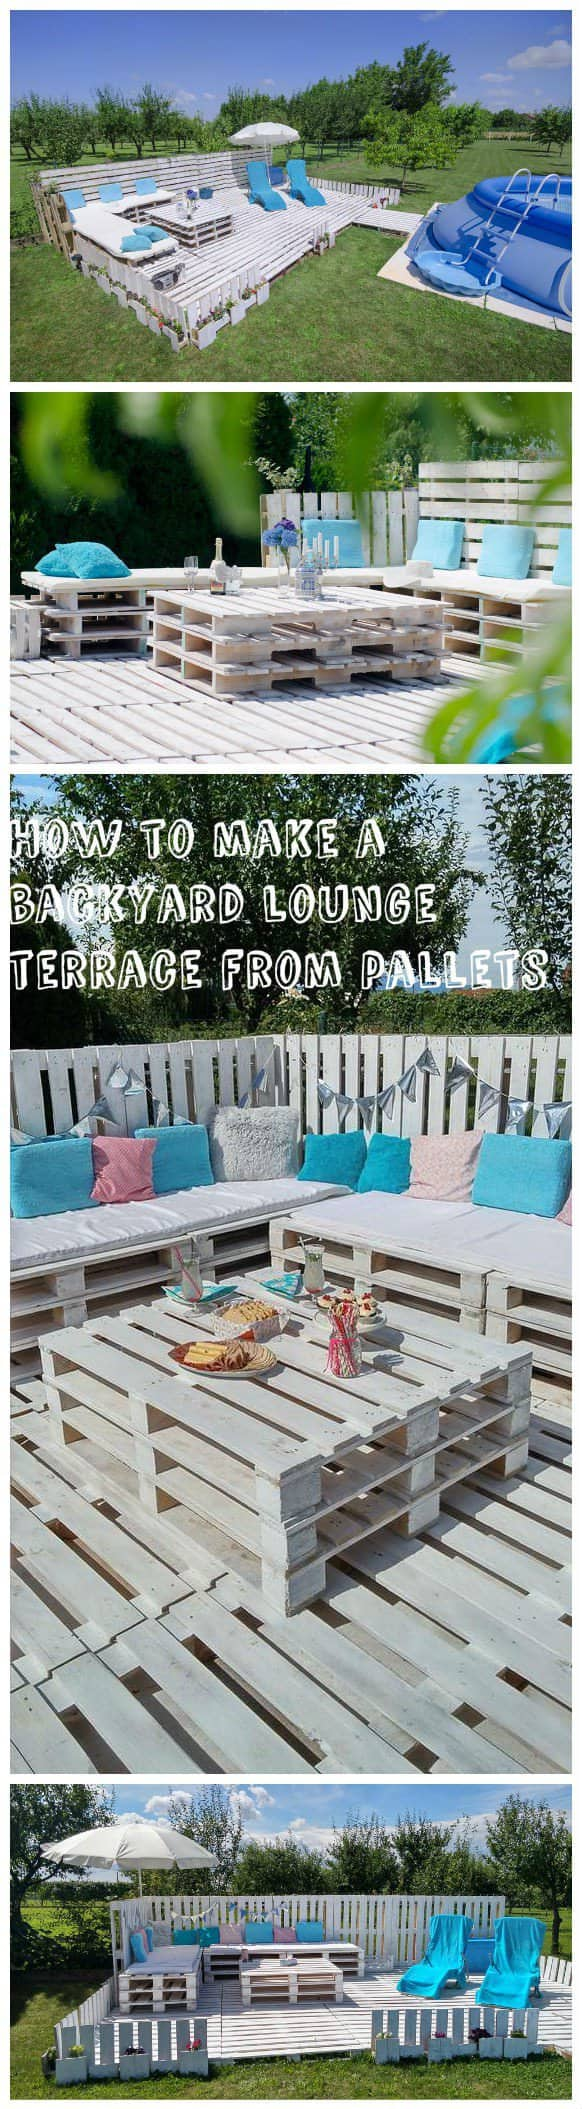 the backyard lounge party terrace you need for your 2016 summer